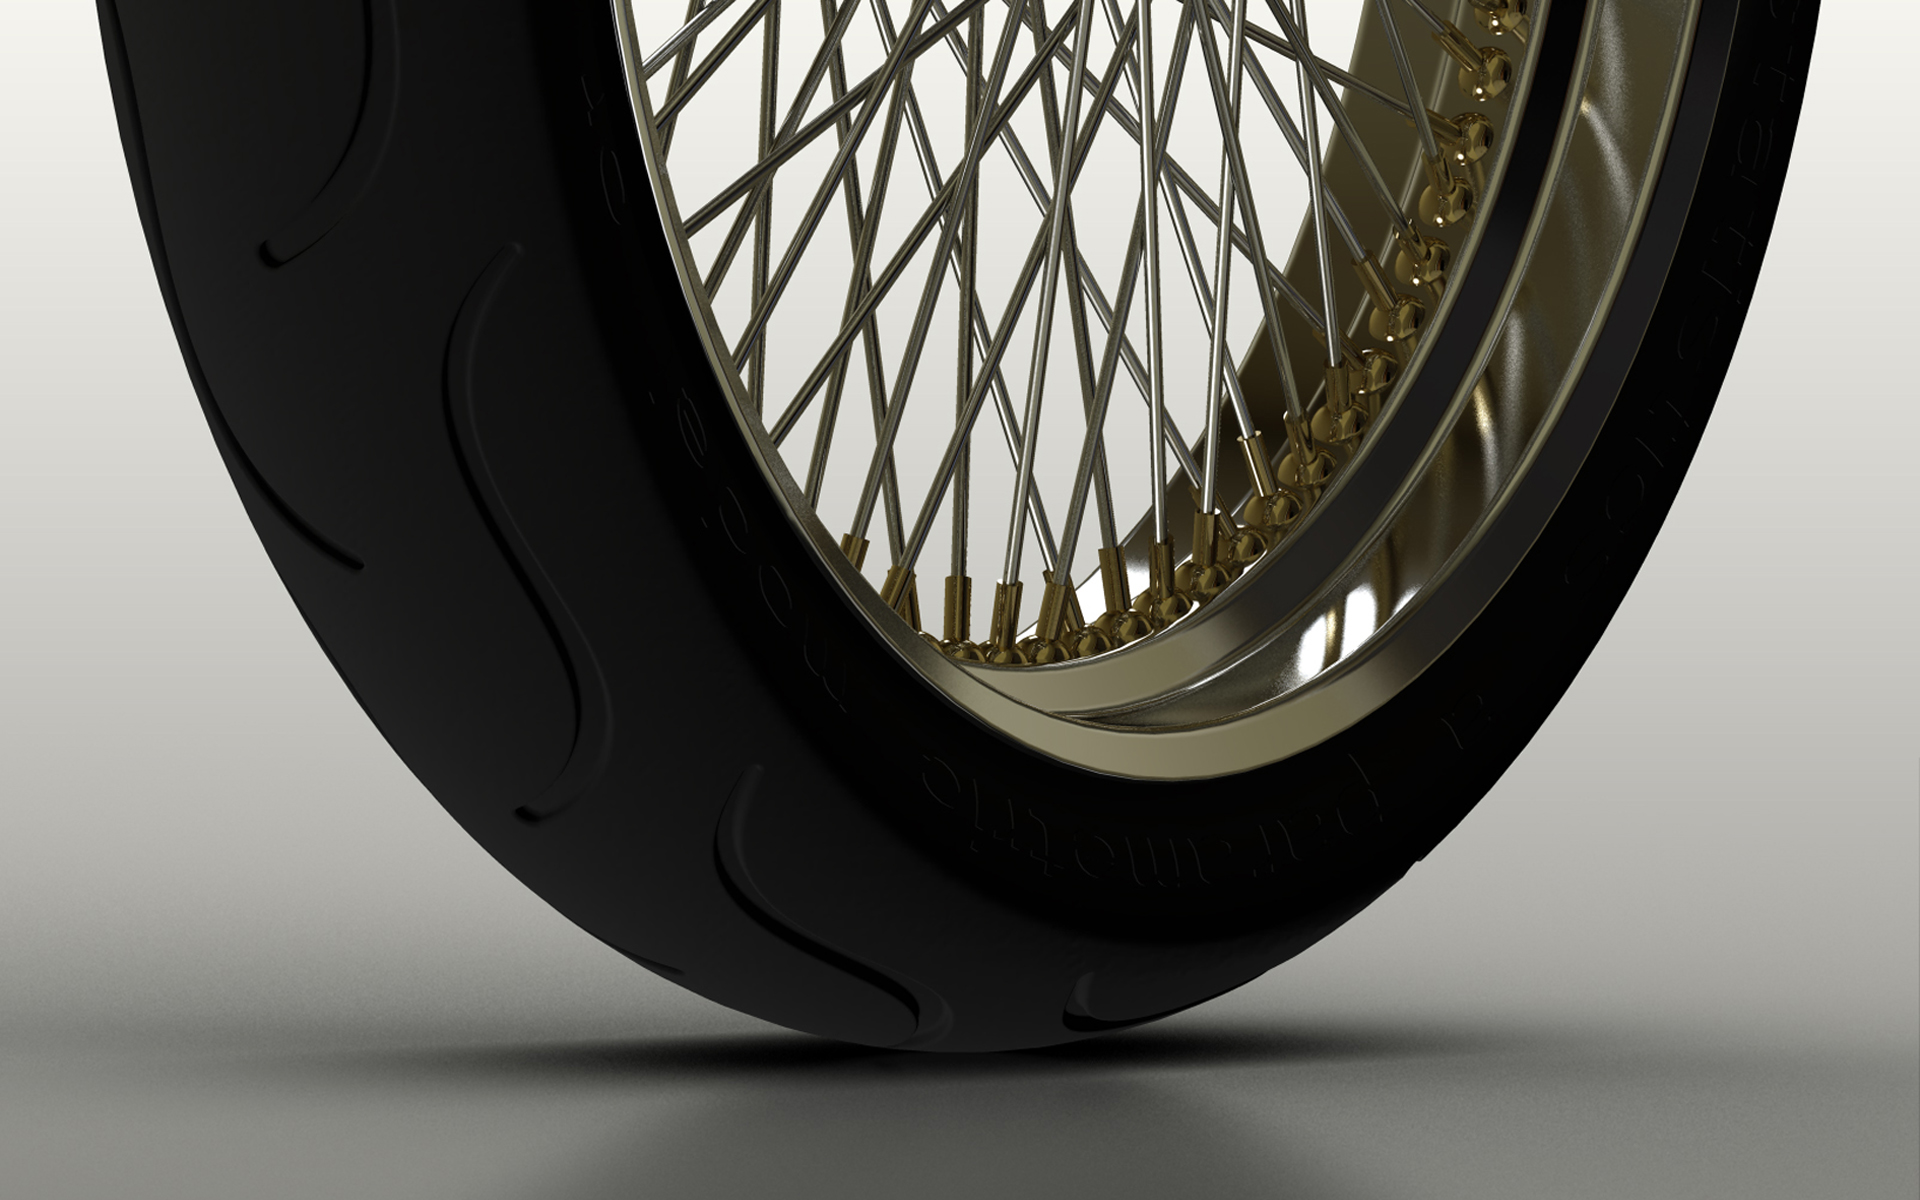 wallpaper_proe_motorbike_wheel_1920x1200.jpg